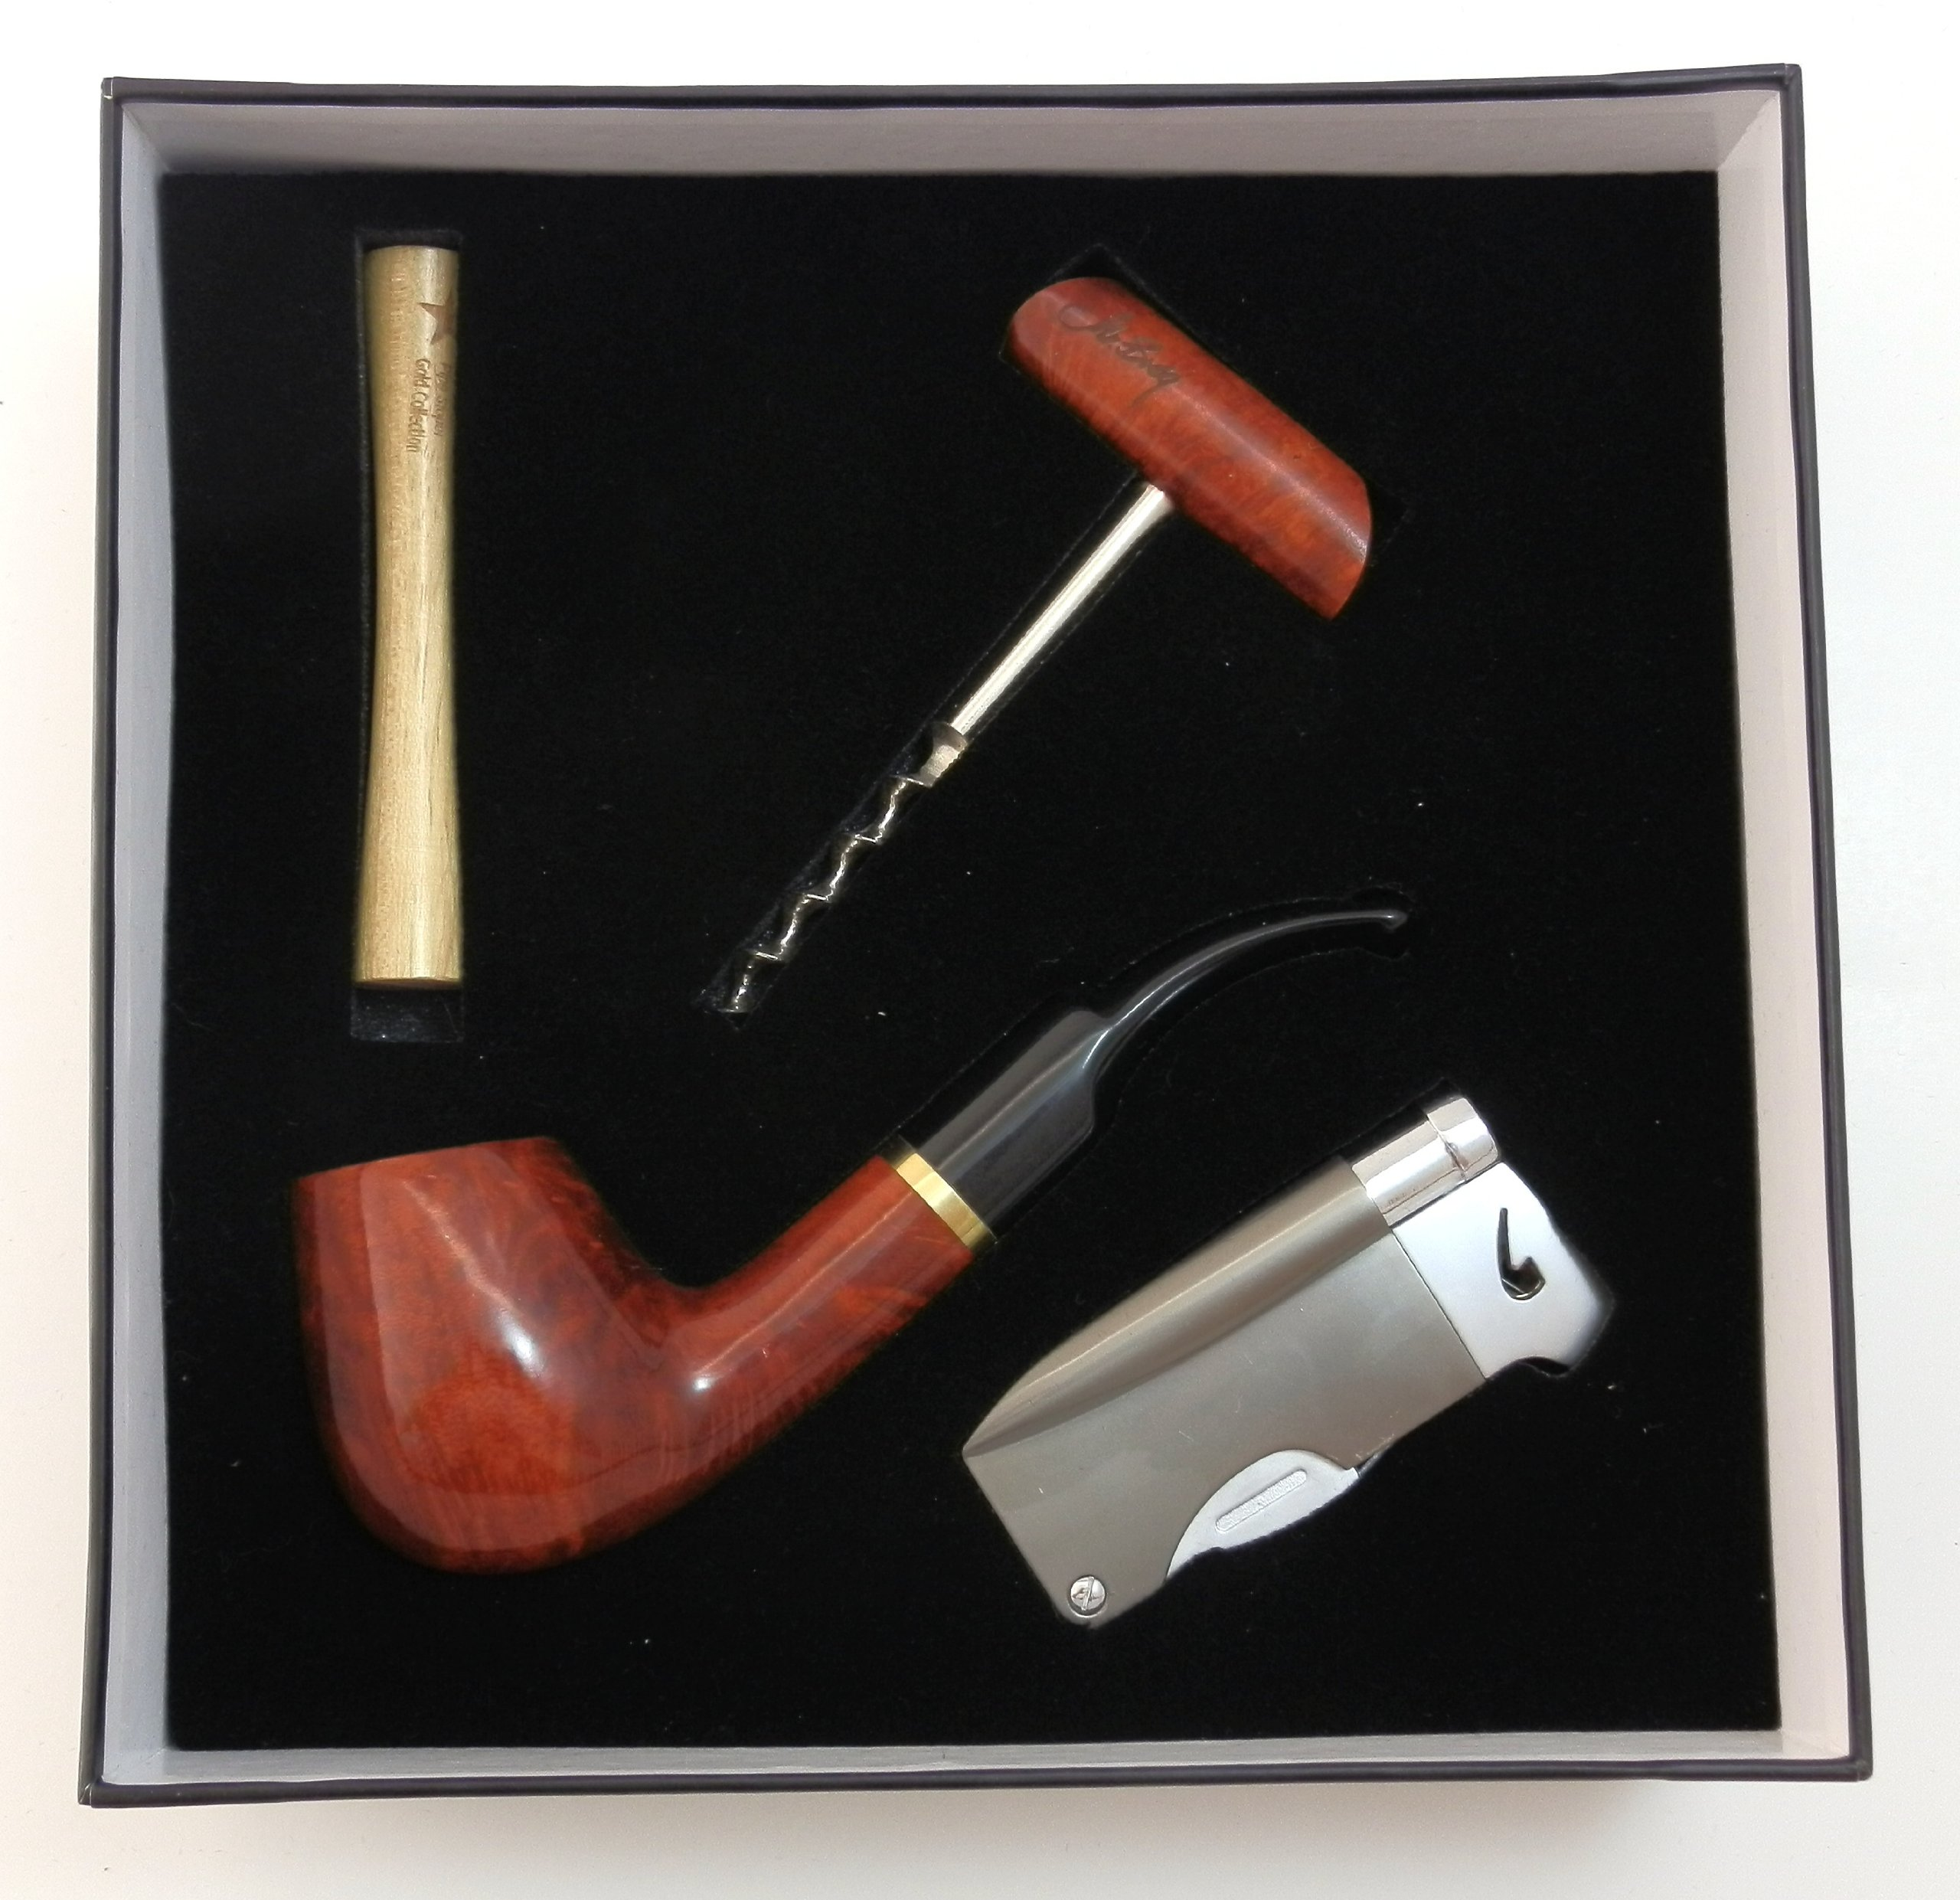 Tobacco Pipe Gift Set - Mr. Brog Gold Collection - Briar Pipe, Stand, Tamper, Lighter w Tool, Wine Opener - Hand Made